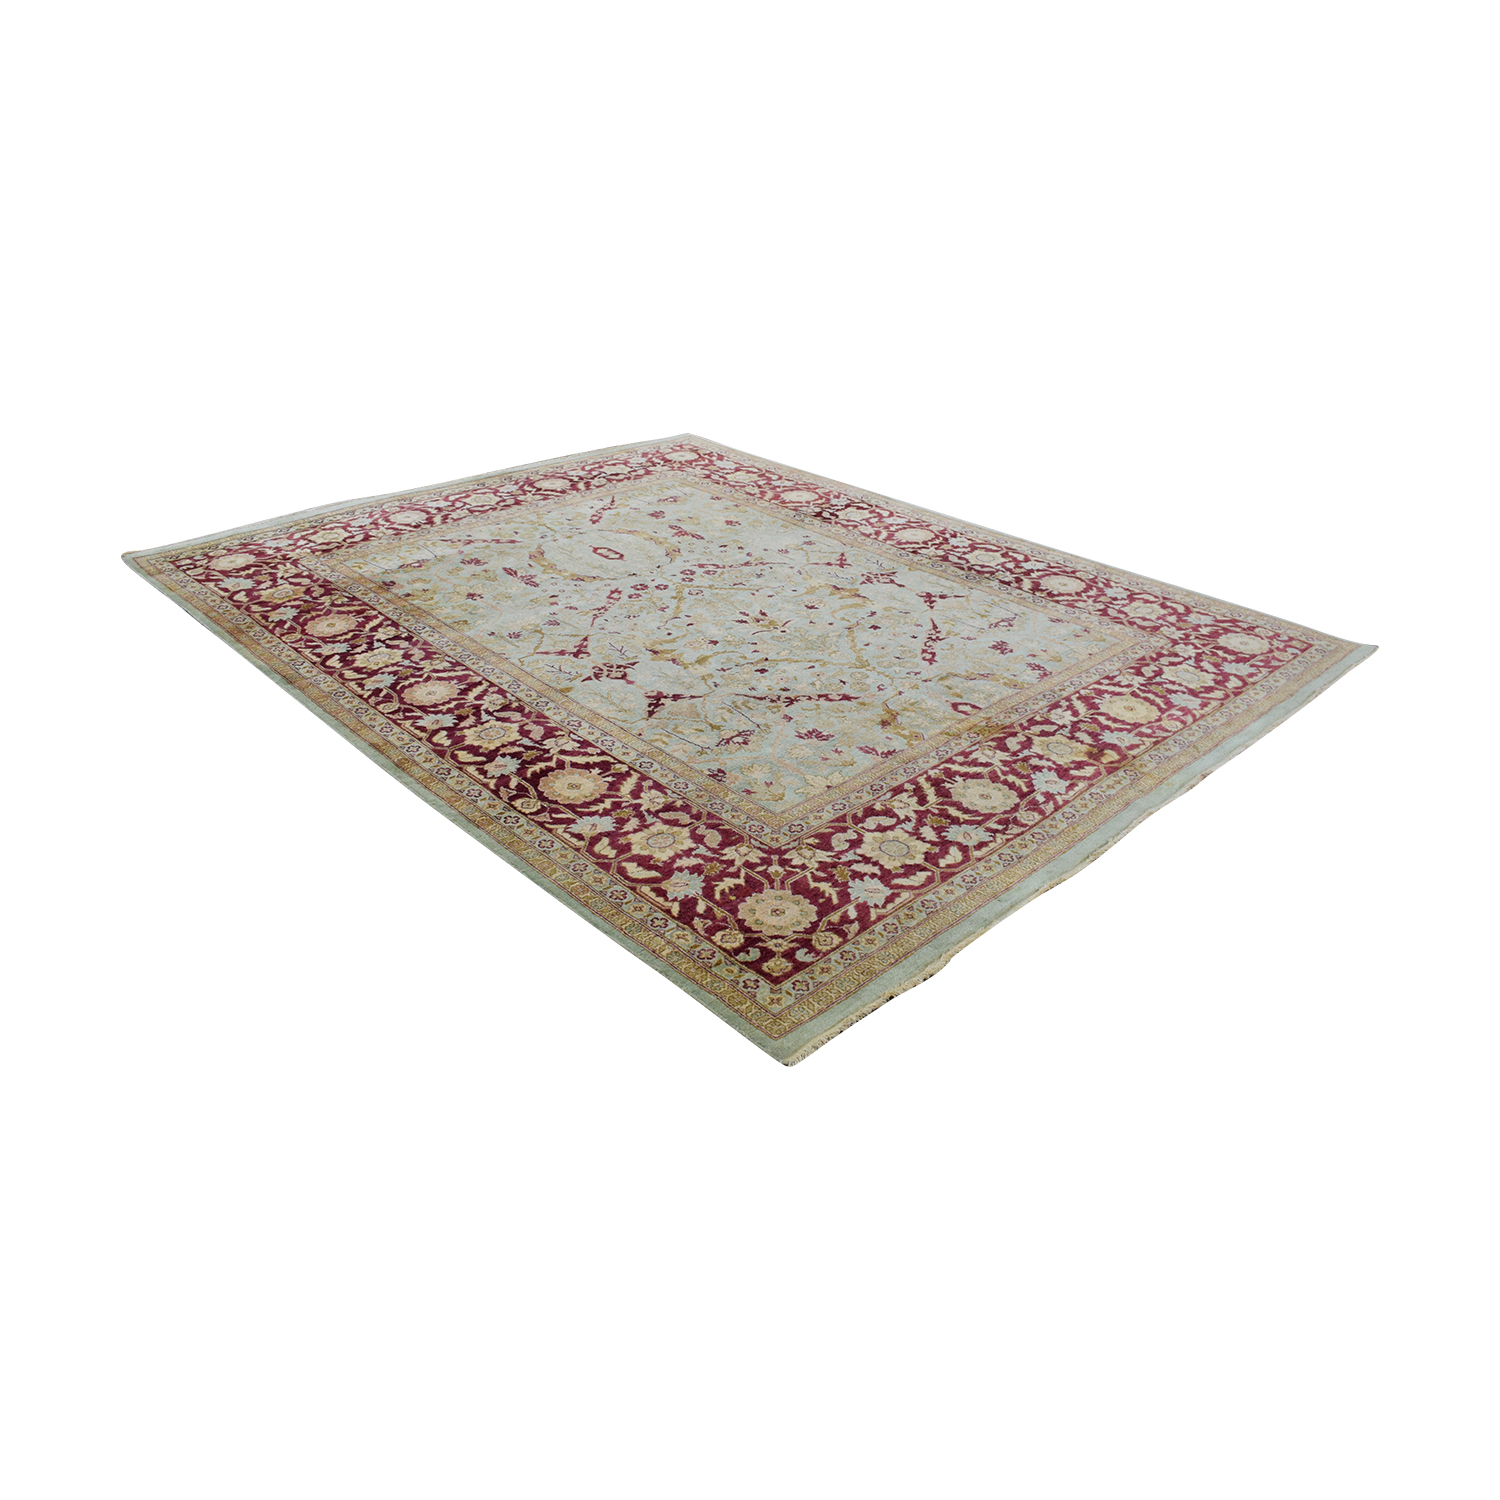 Bloomingdale's Oriental Area Rug nj